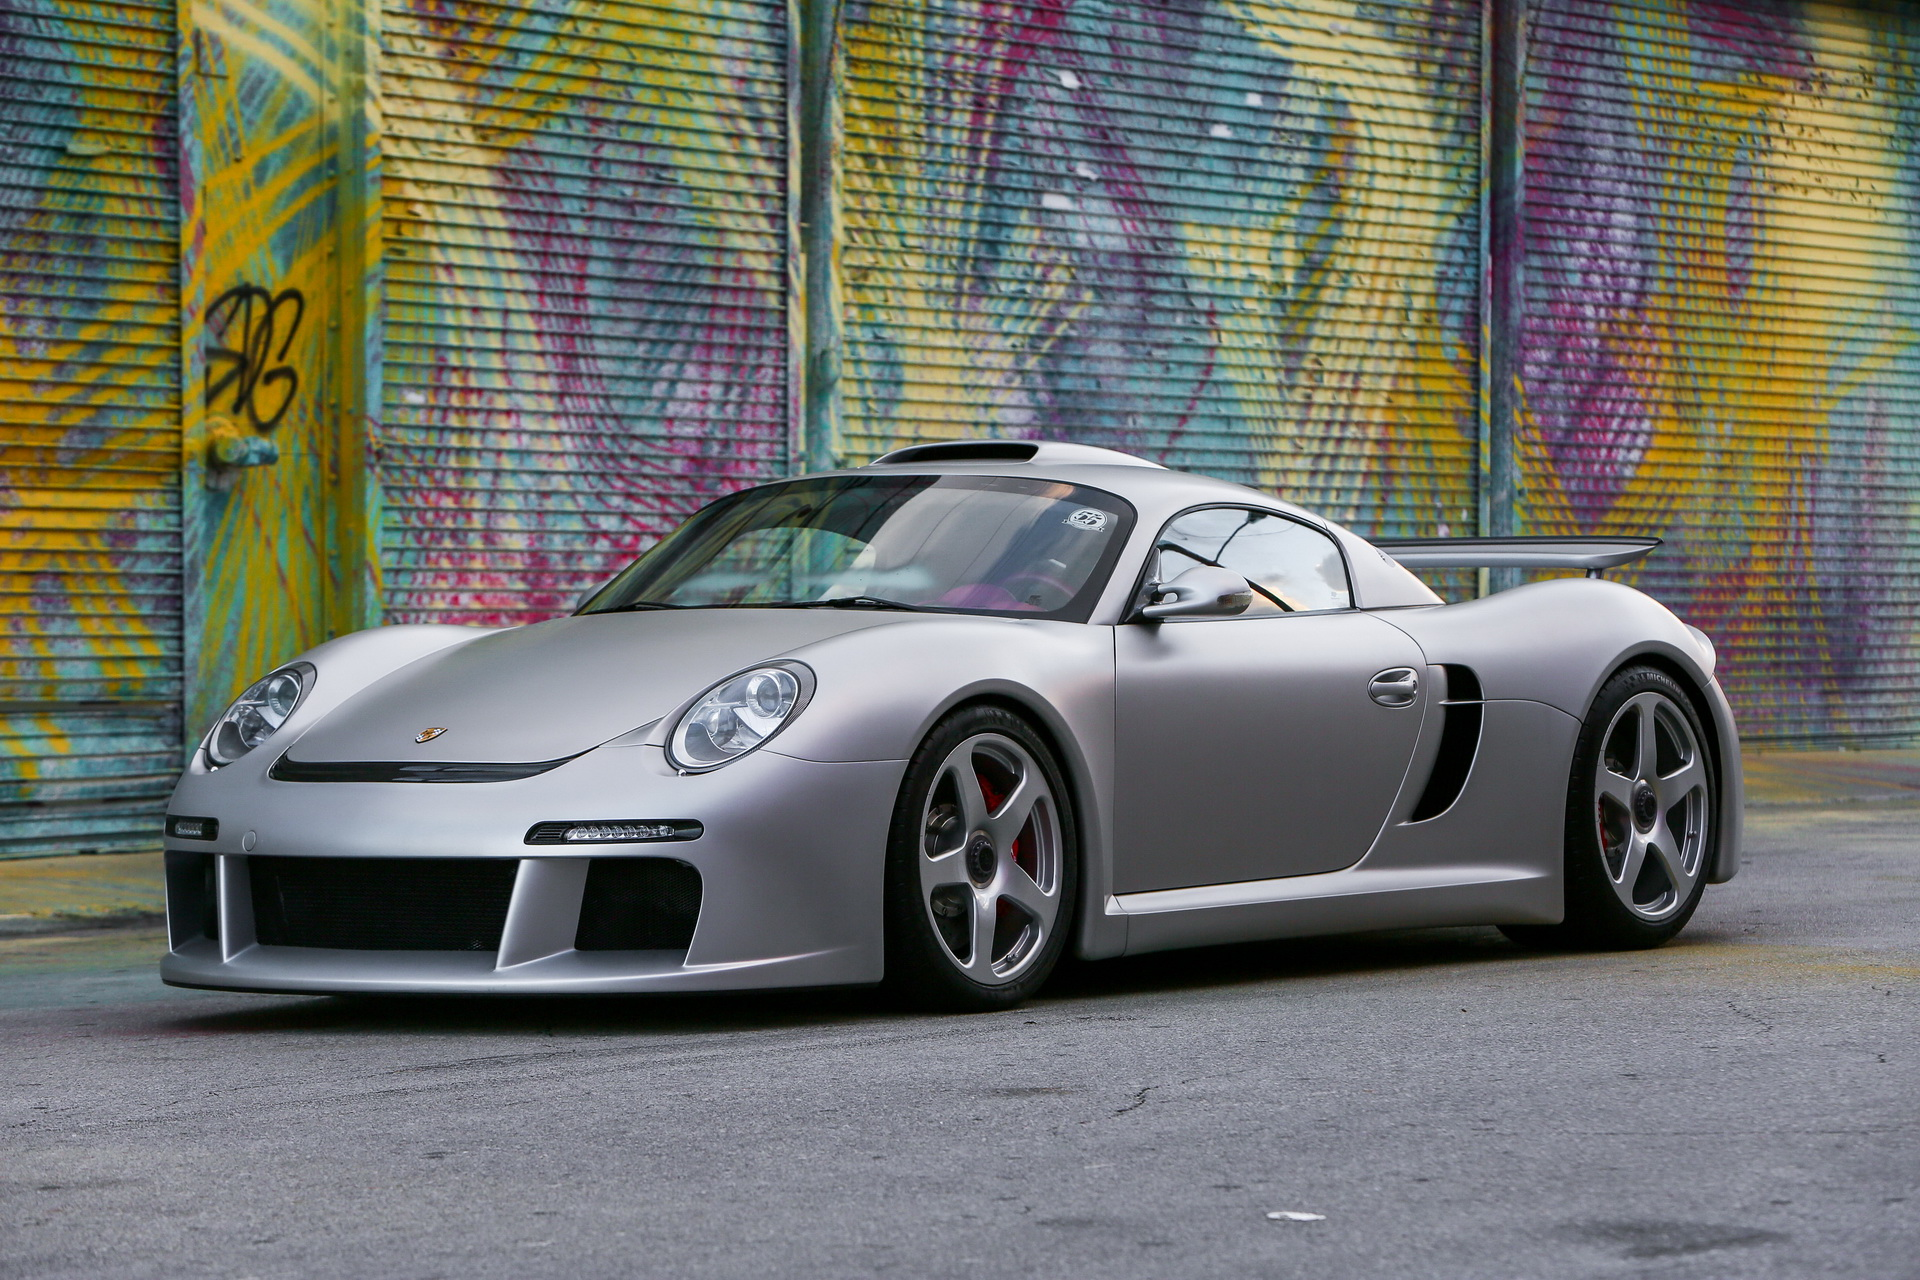 The RUF tuner team caused quite a few ripples back in 2007 when it launched the CTR3, an extreme track tool based on the Porsche Cayman chassis and tech. The tiny coupe had gorgeous looks and packed 700 PS (690 hp / 515 kW) under the hood, which enabled it to outpace many supercars.